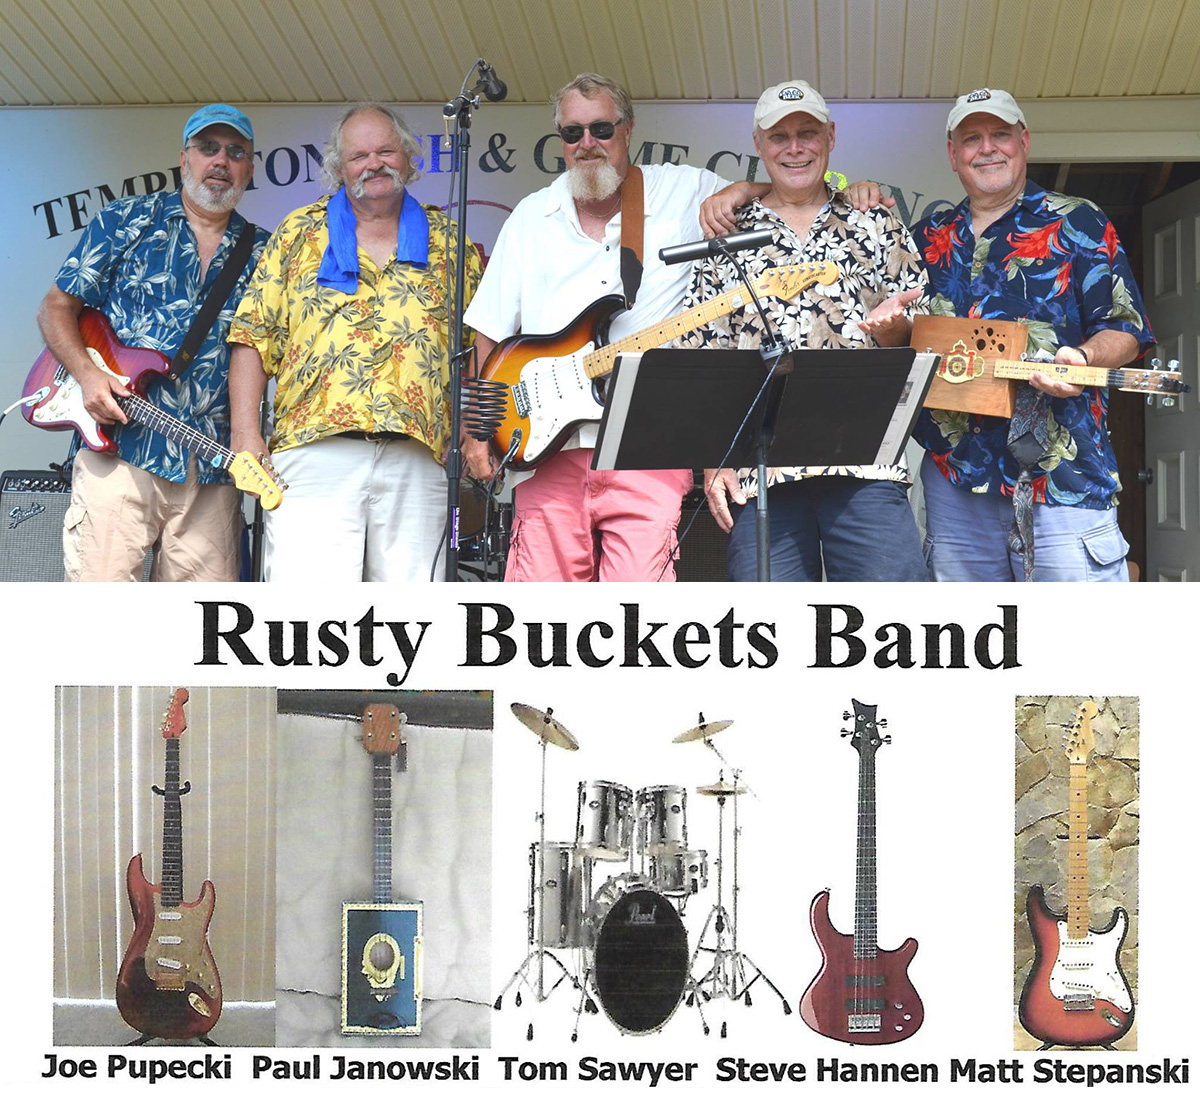 Rusty Buckets Band photo